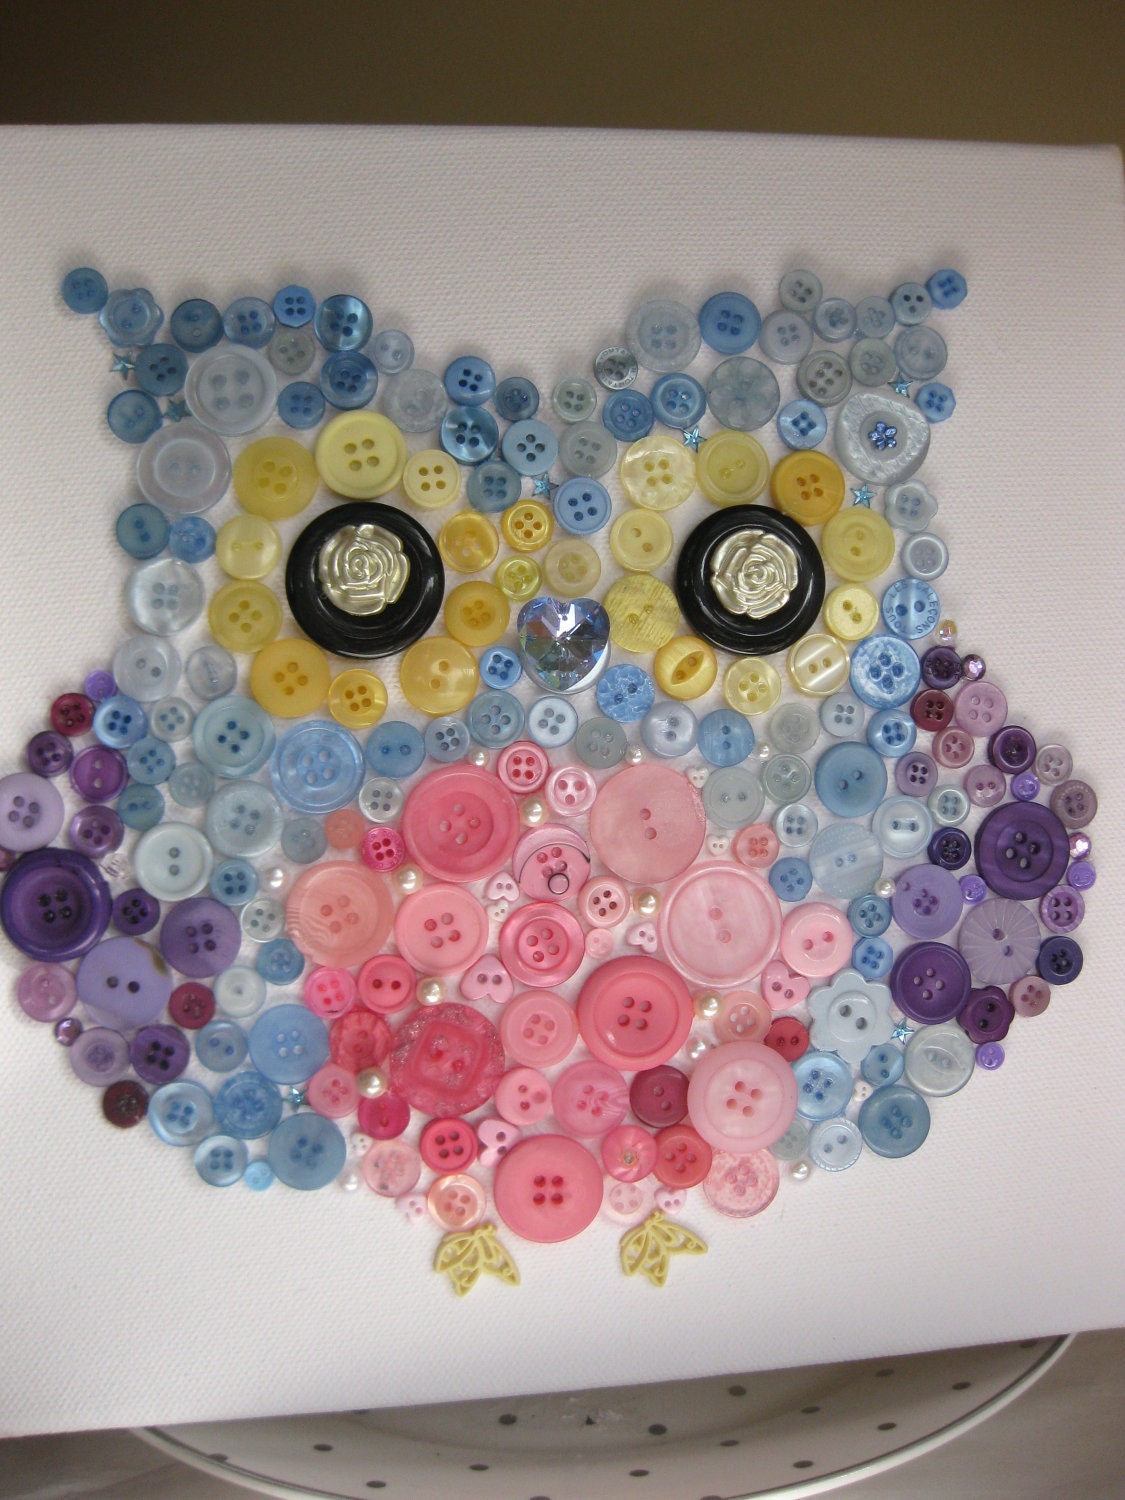 Owl Art Made with Buttons - Bing images